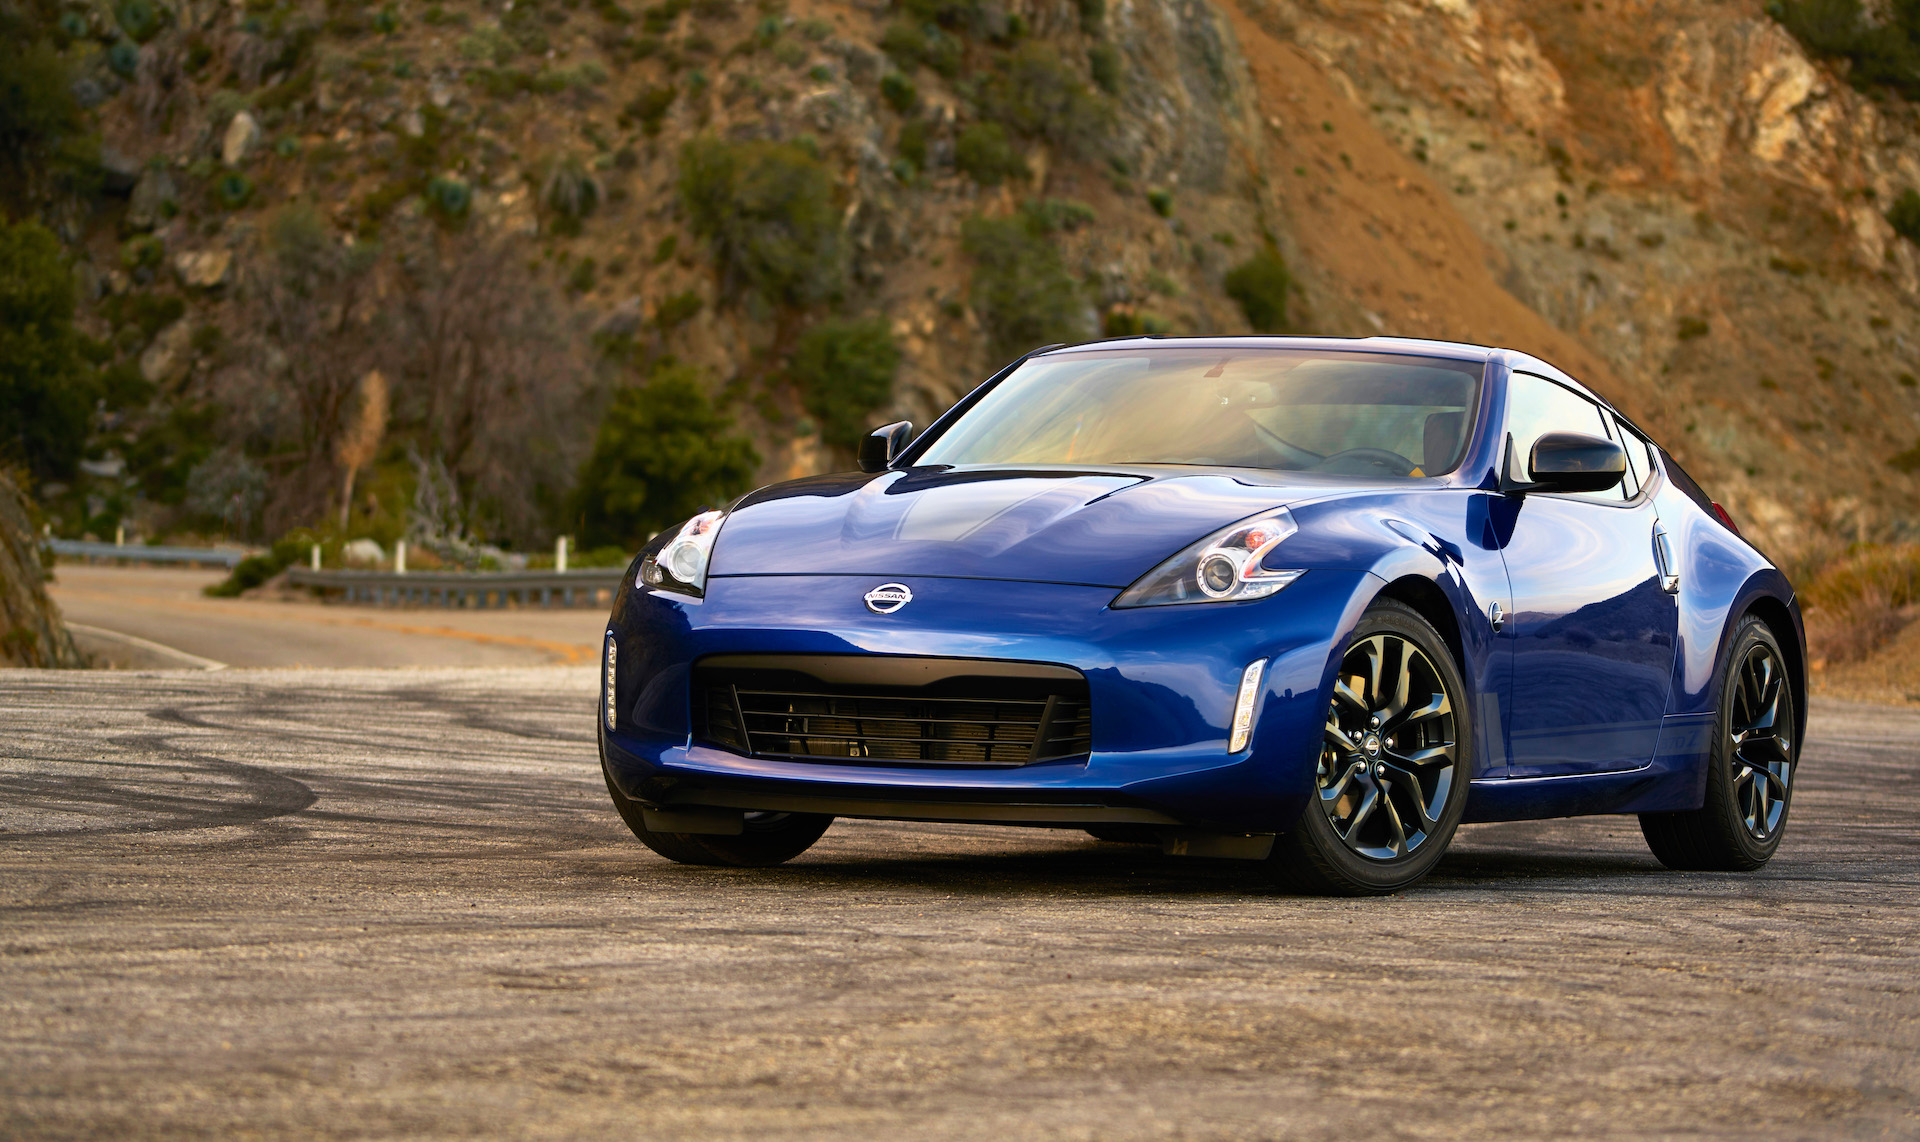 38 A 2019 Nissan Z Car Price and Review